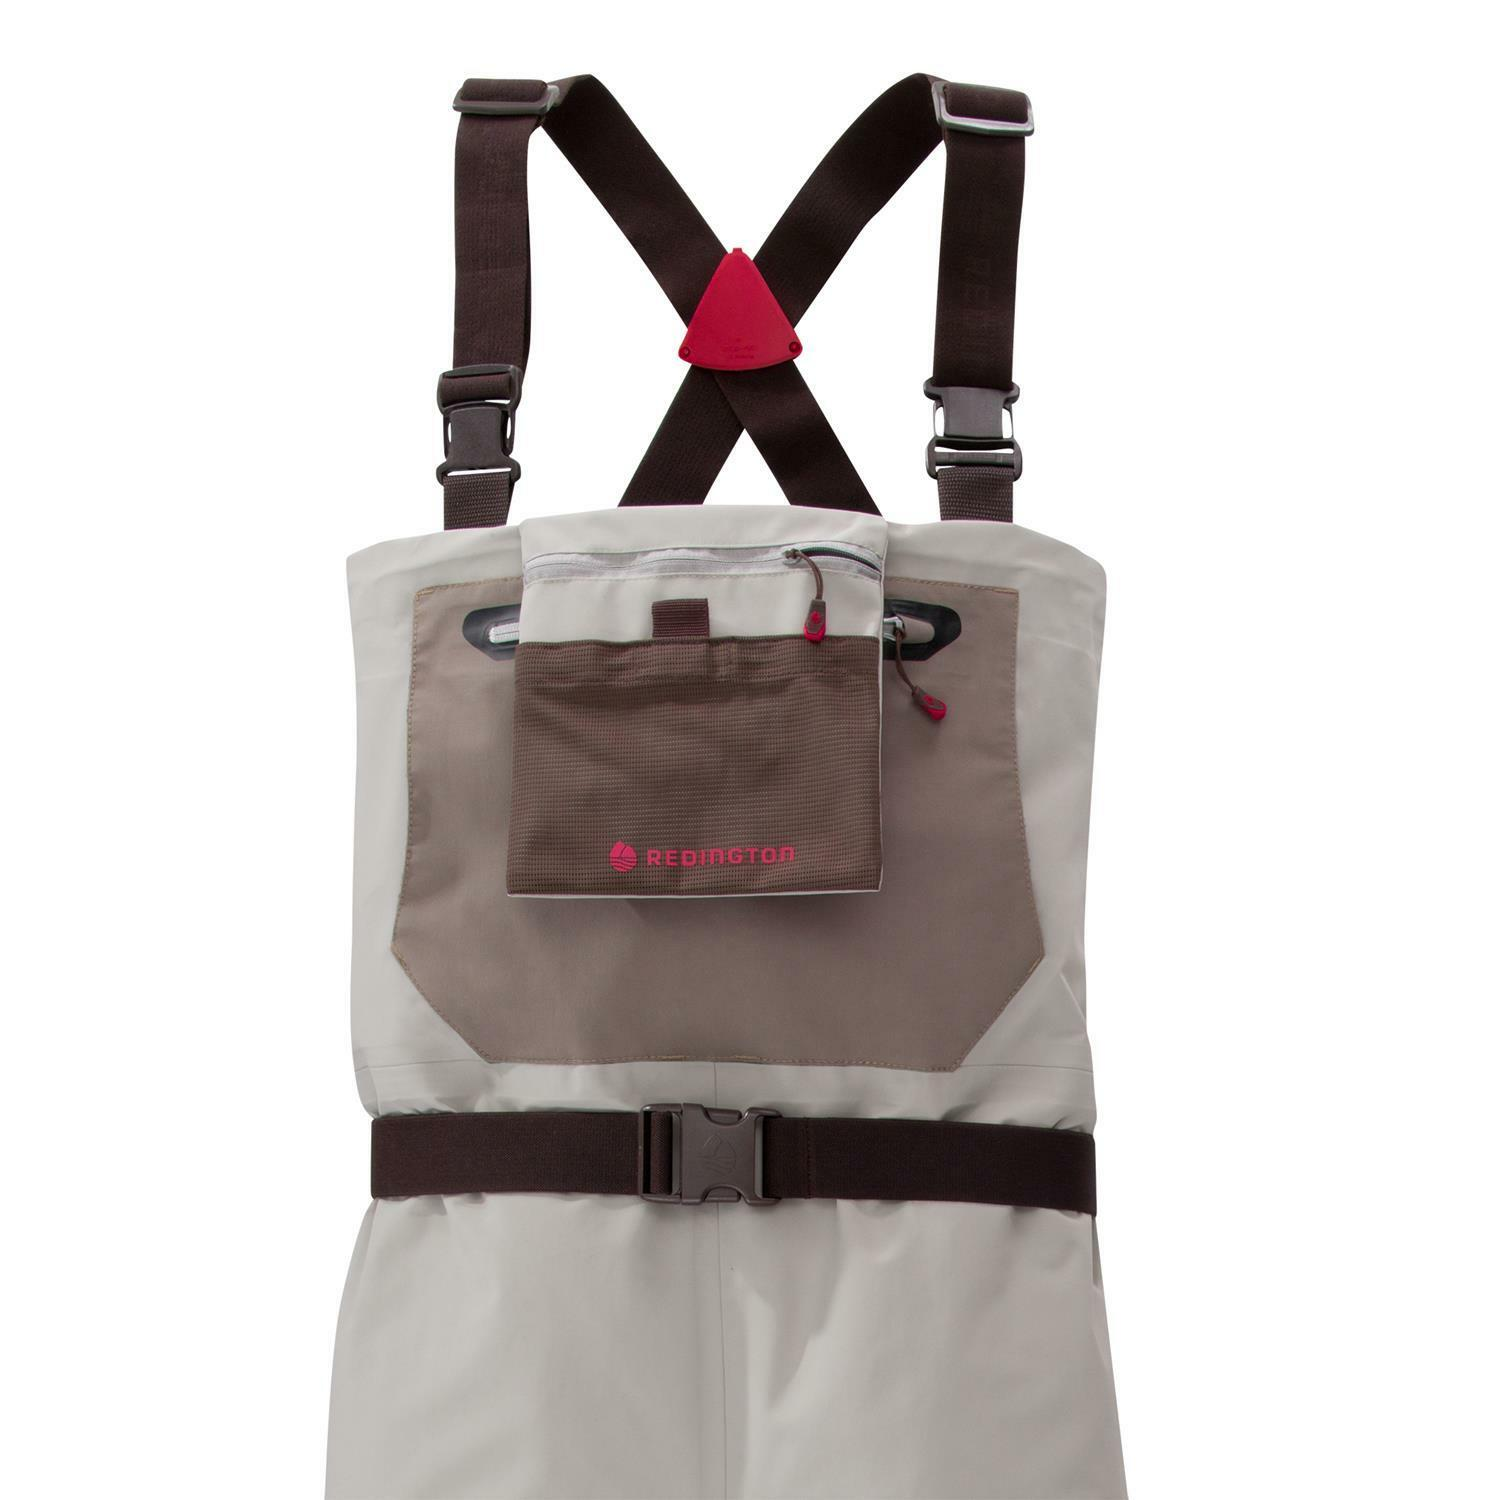 SIZE MEDIUM KING ROTINGTON SONIC-PRO BREATHABLE FLY FISHING CHEST CHEST CHEST WADERS 0bb76d